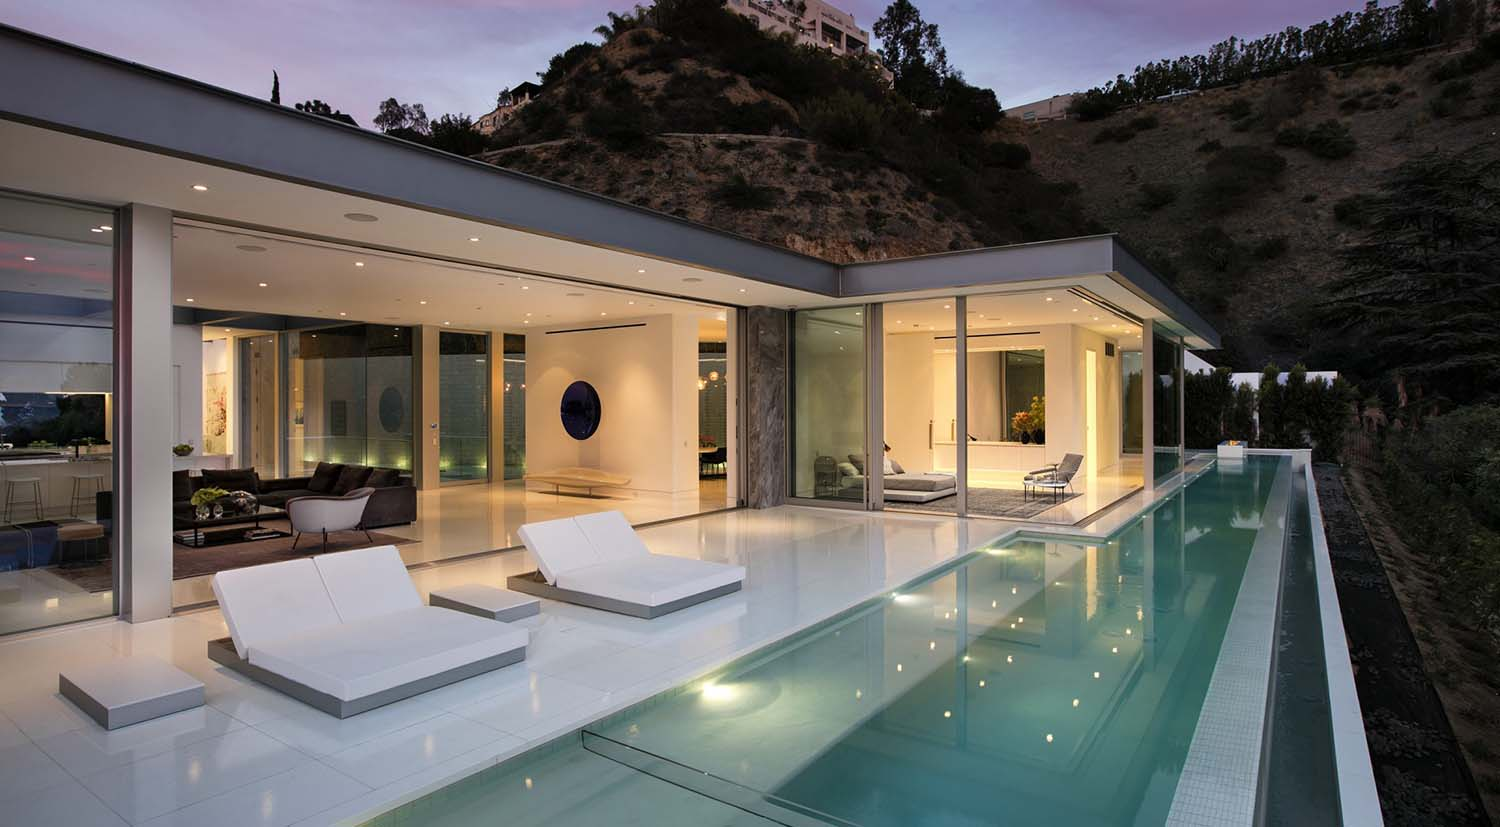 Epic Architectural Masterpiece Overlooking The Hollywood Hills - Hollywood-hills-architectural-masterpiece